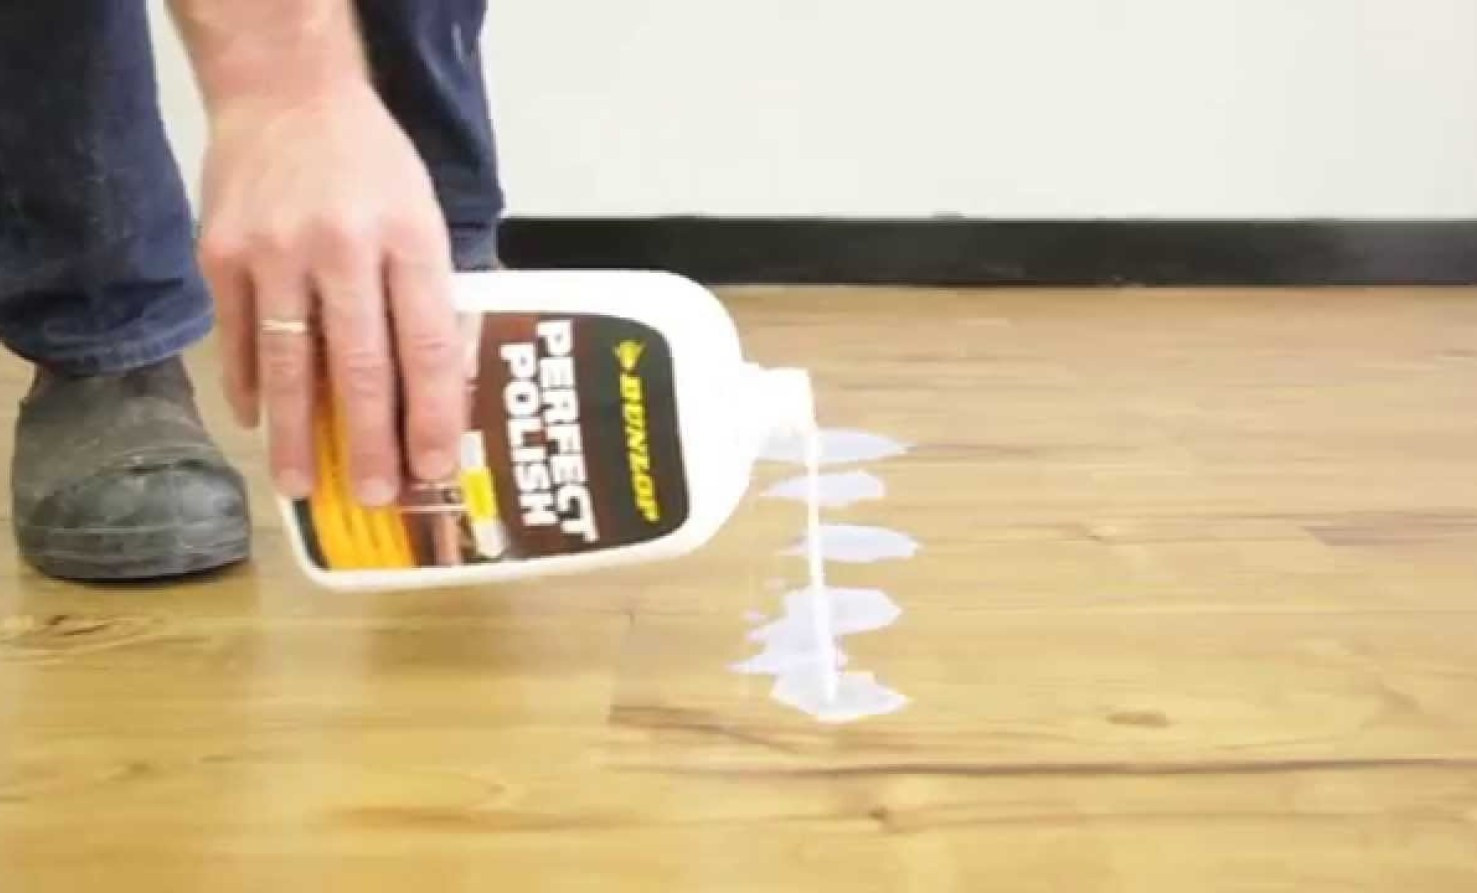 15 Stylish How to Refinish Hardwood Floors Yourself without Sanding 2021 free download how to refinish hardwood floors yourself without sanding of 14 luxury diy refinish hardwood floors photograph dizpos com for diy refinish hardwood floors unique how to stain a hardwood floor